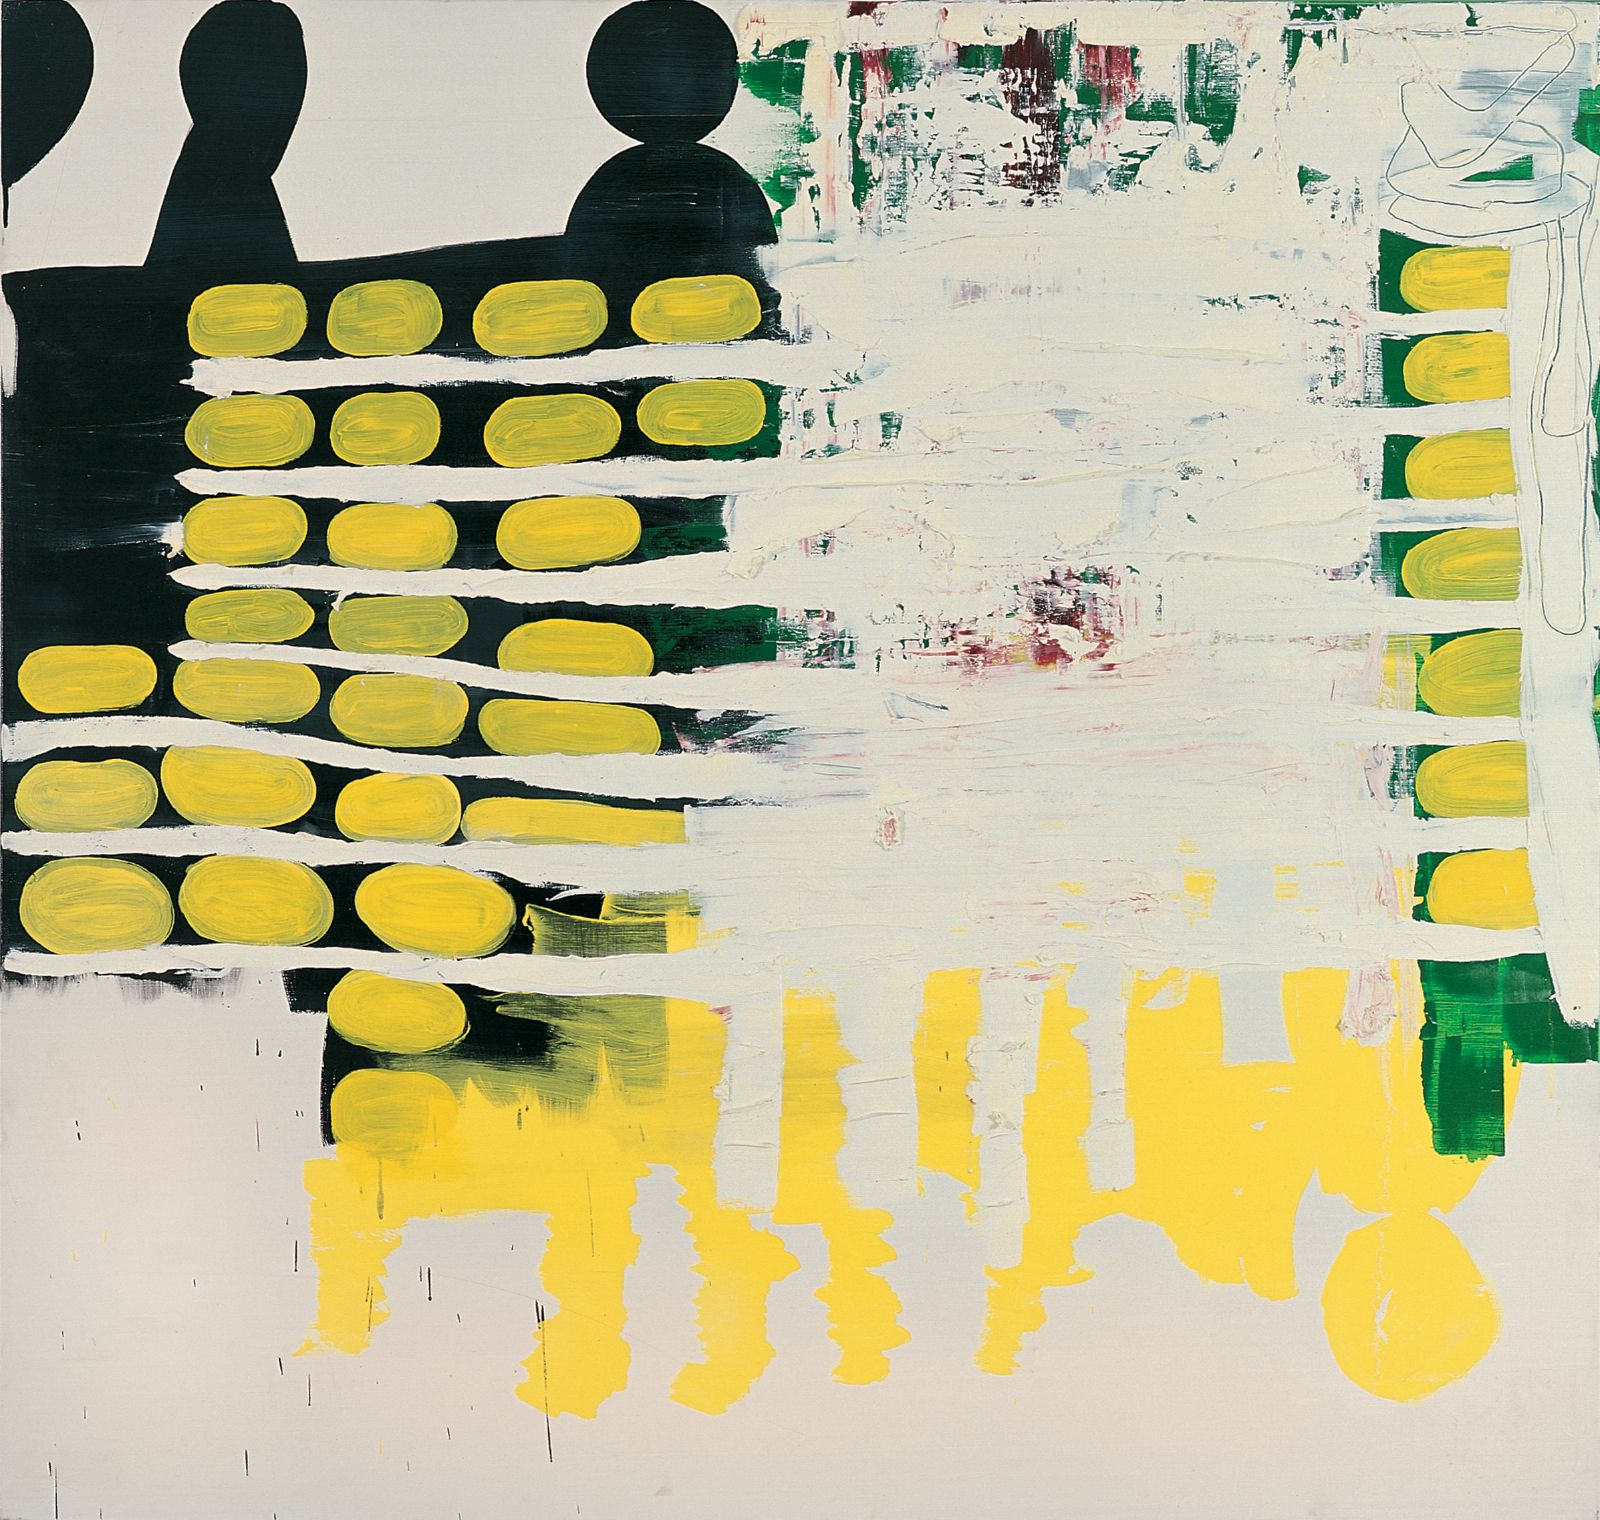 The Secret No. 13, 2001-2002, acrylic and oil on canvas, 185 x 195 cm